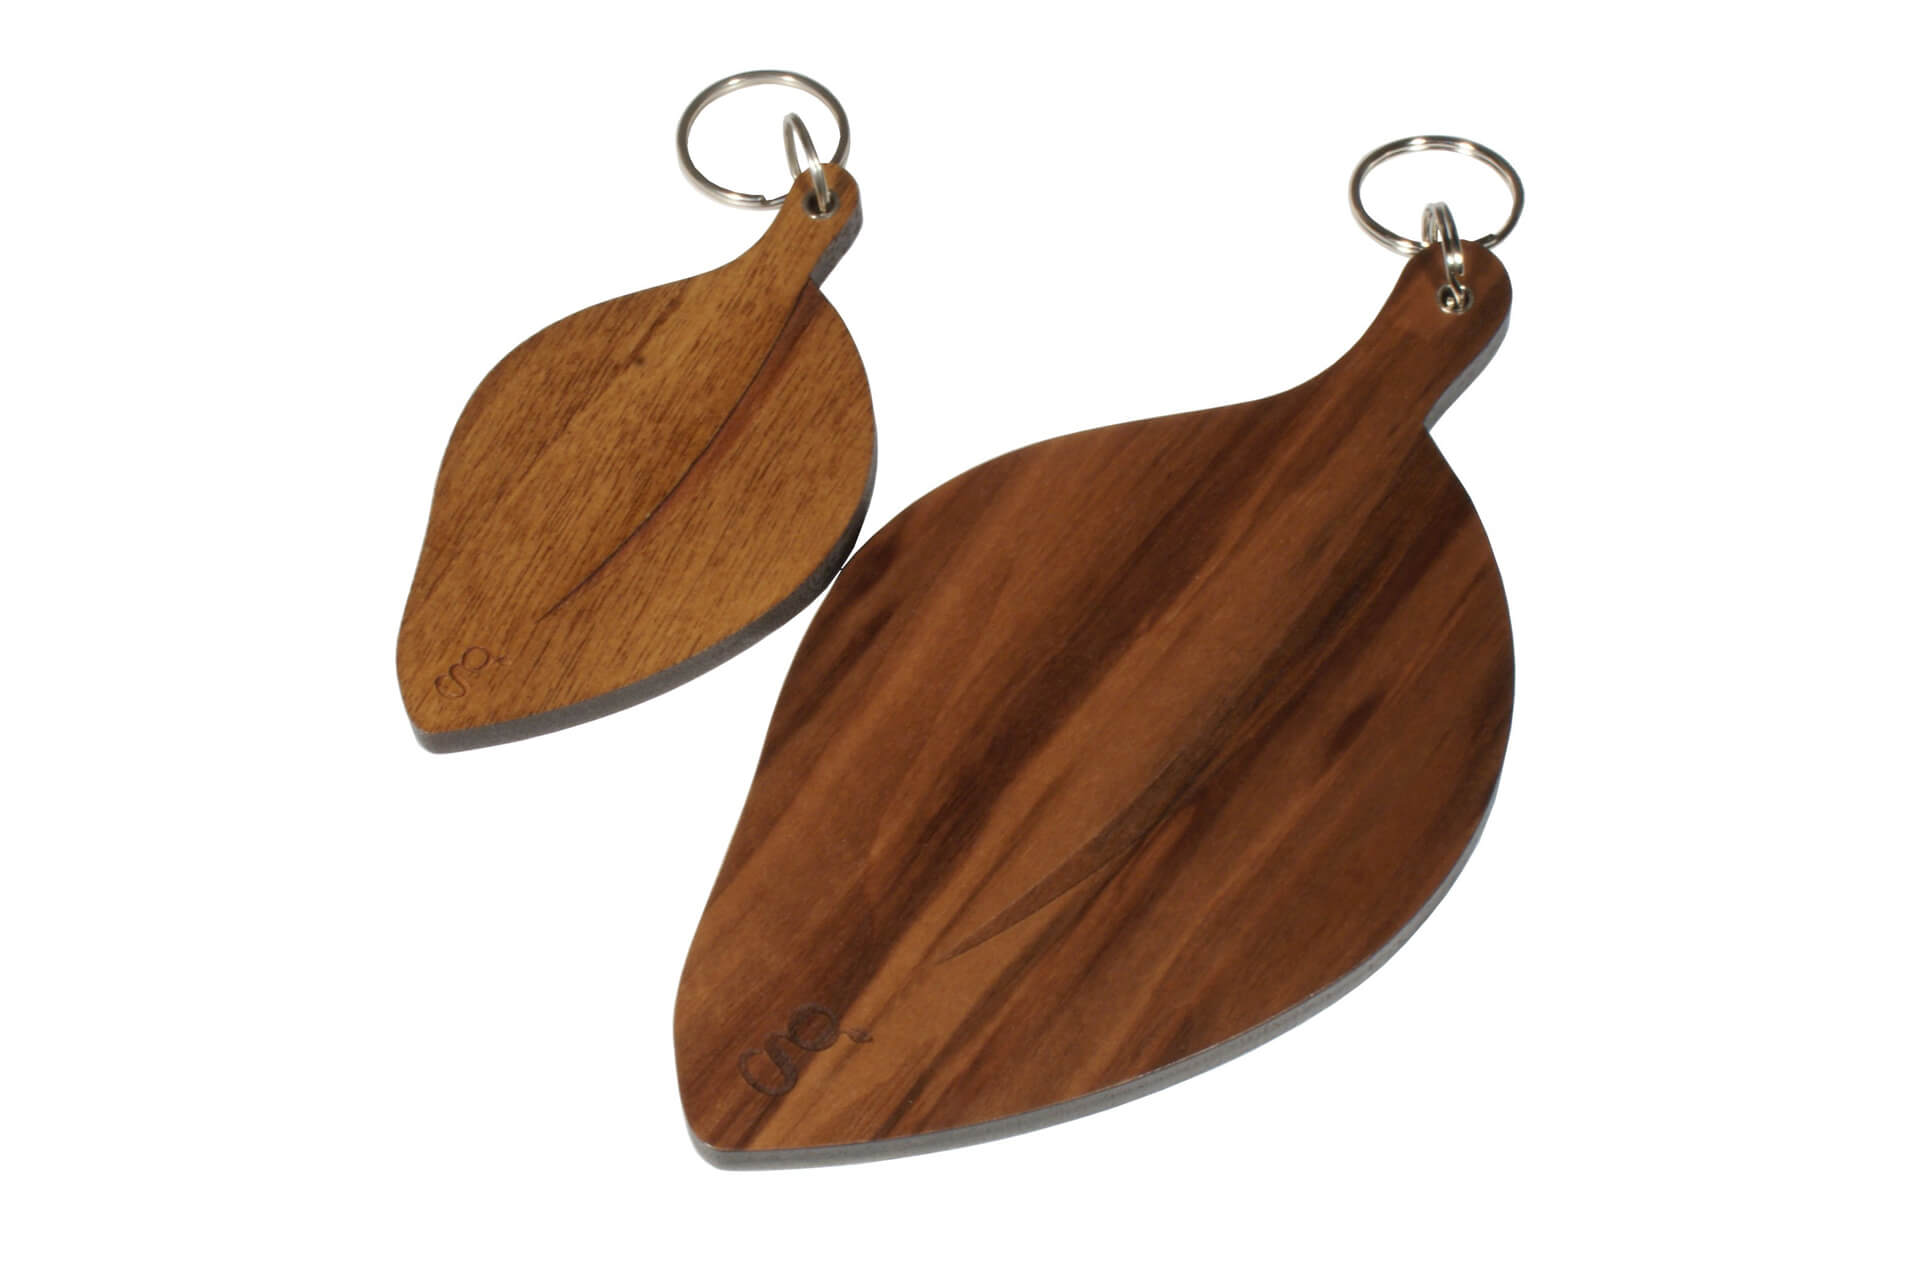 bespoke wood keychain tag for hotels and leisure industry